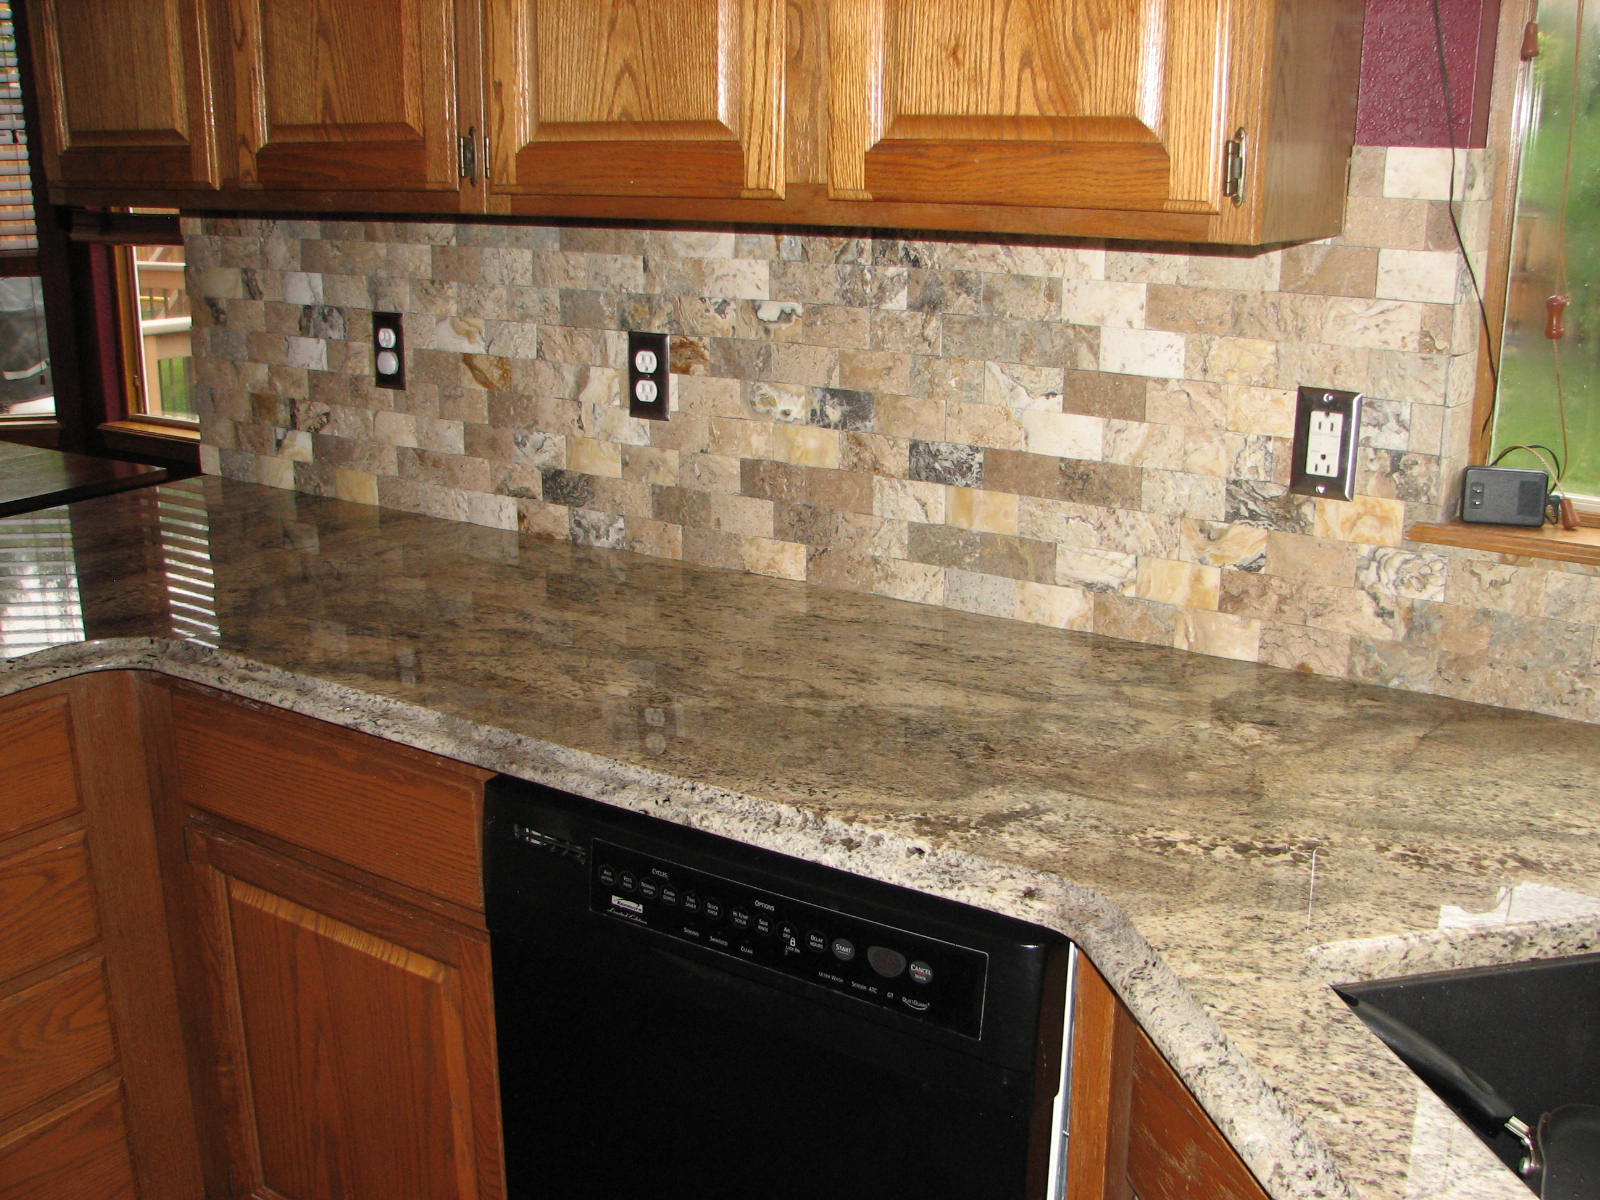 decoration kitchen modern stacked stone backsplash photos with no grout design stacked stone backsplash with variety of finishes design for amazing kitchen or bathroom design